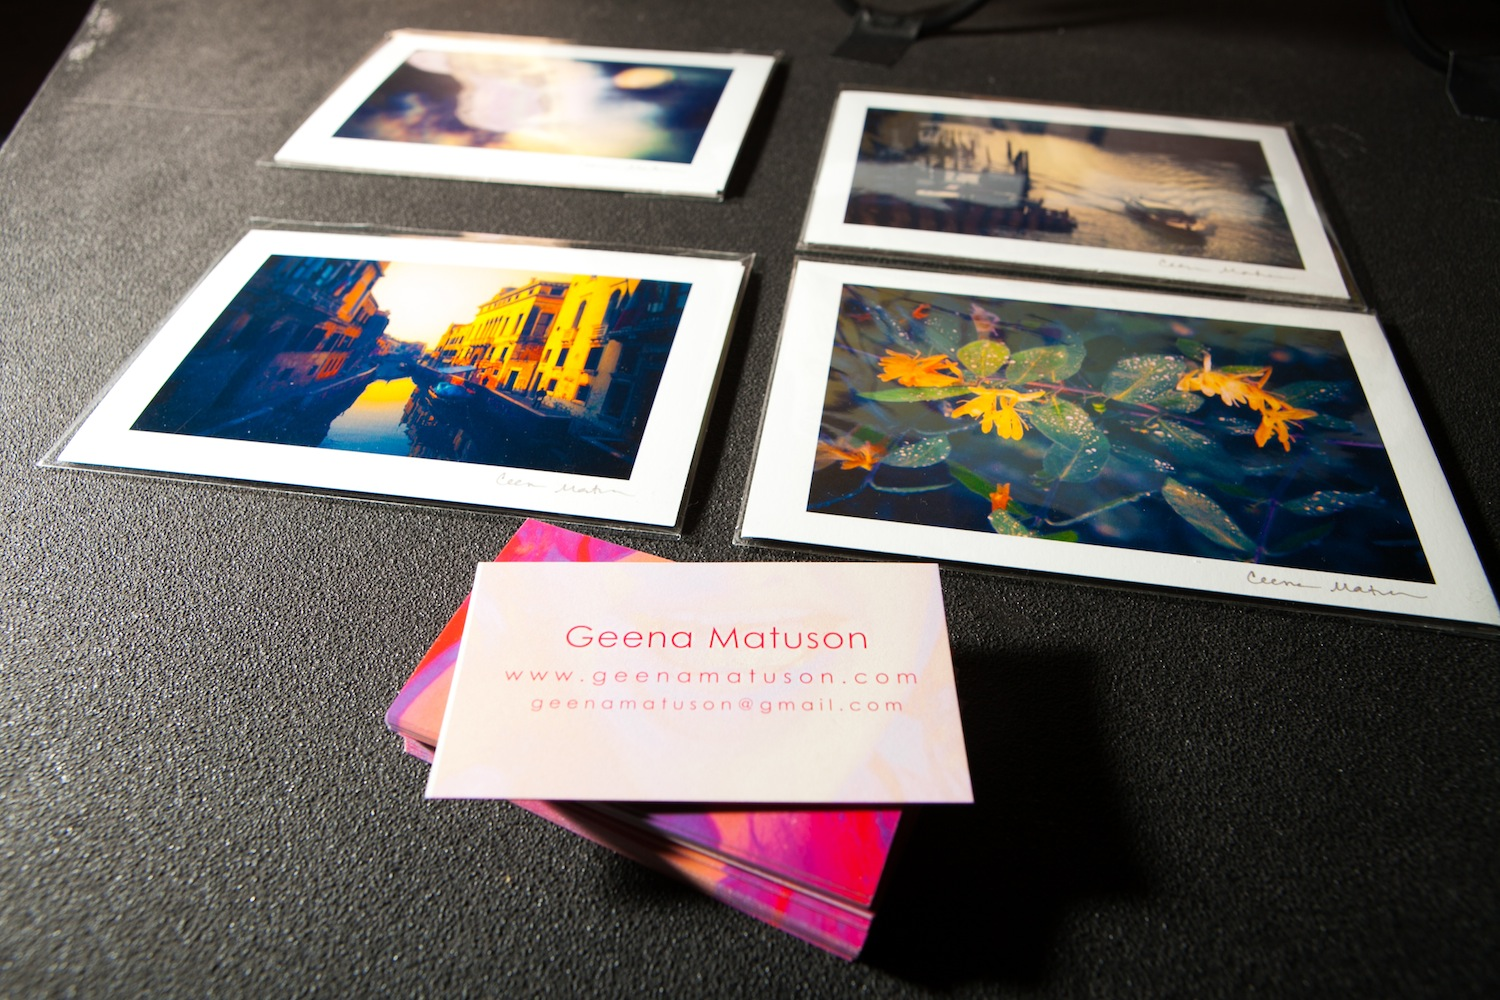 Geena Matuson's (@geenamatuson) work at RAW Artists REVOLUTION event, May 2014.